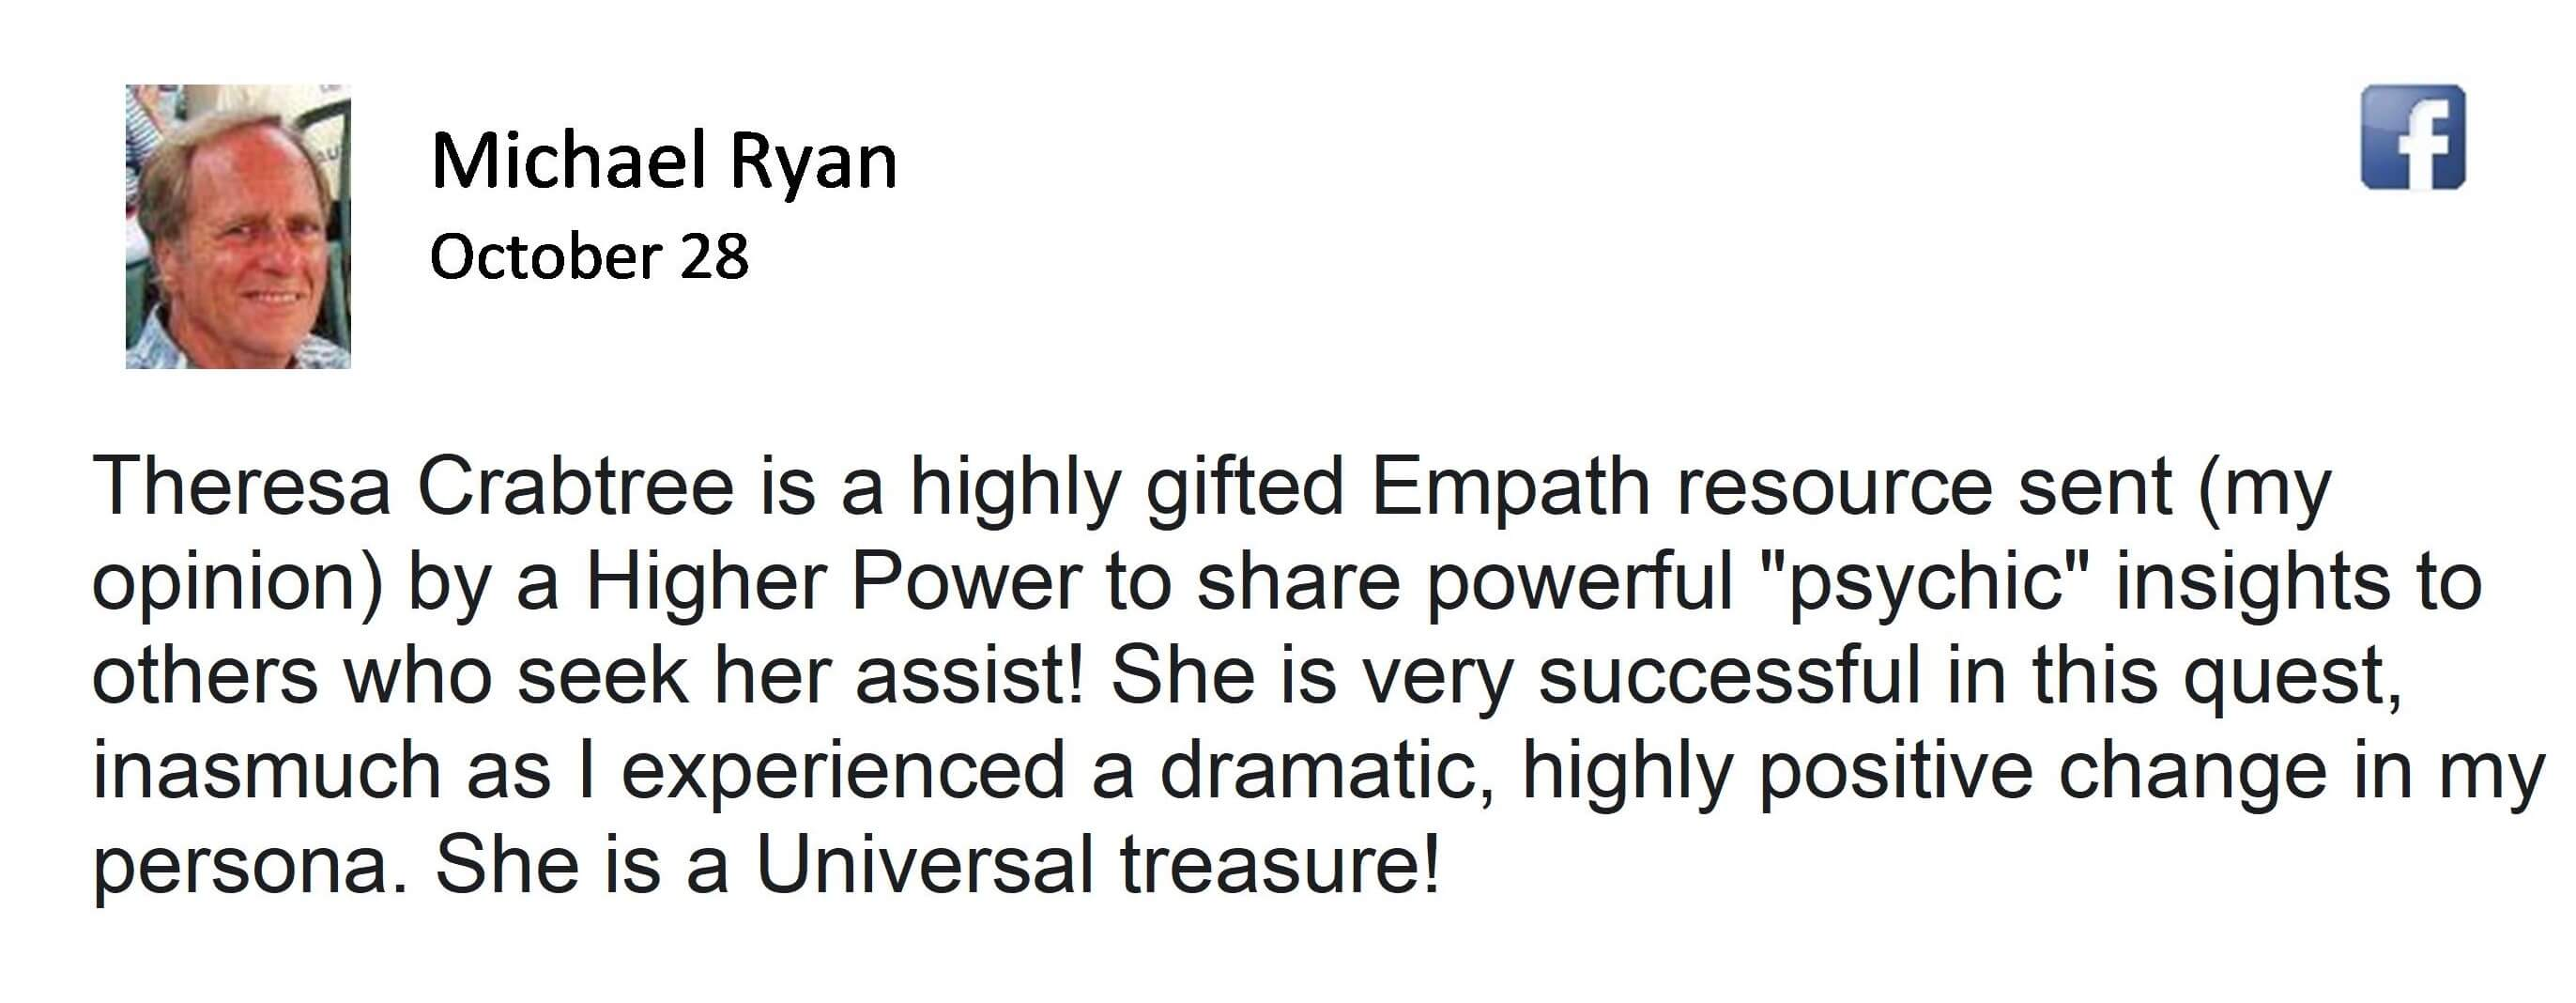 Client Testimonial for Spiritual Growth and Demonic Release